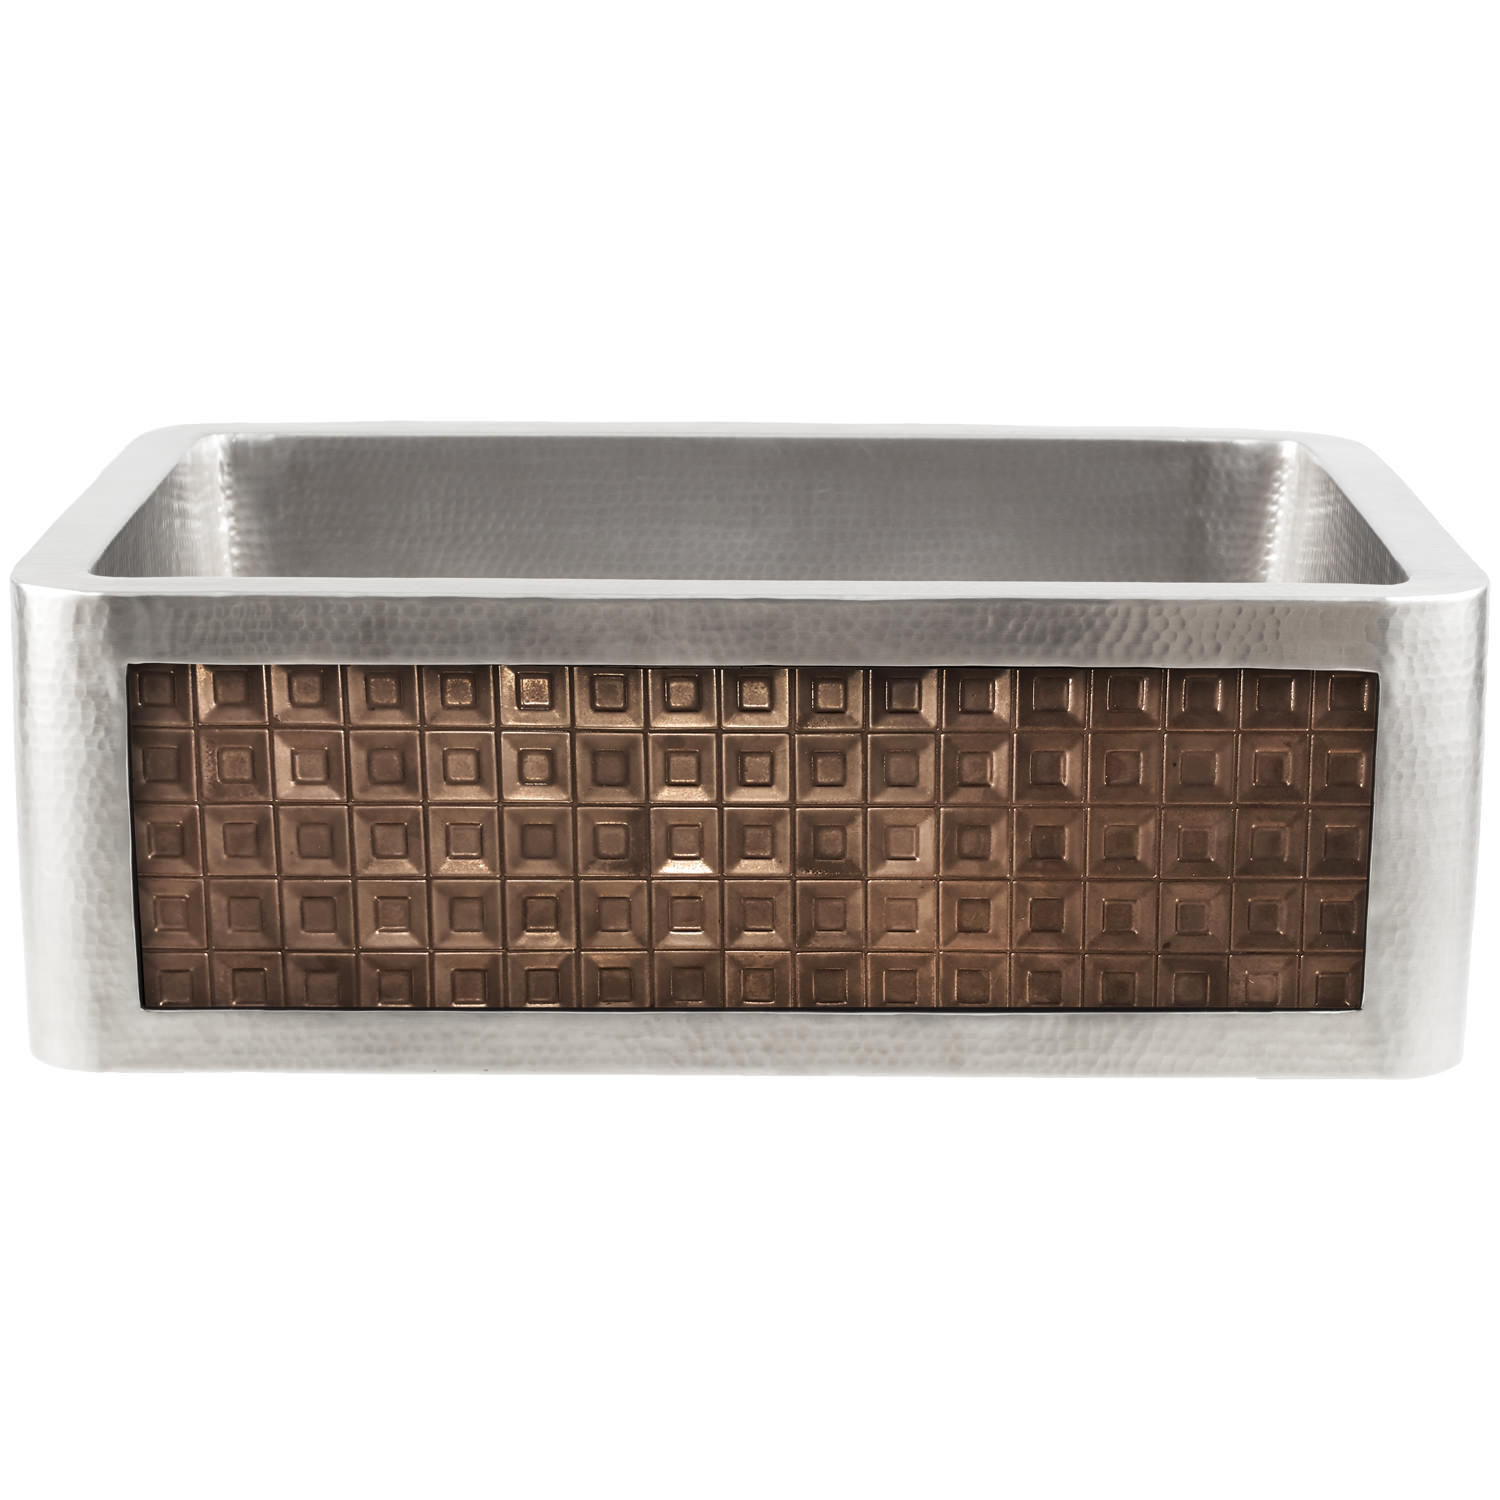 Linkasink Kitchen Farmhouse Sinks - C070-30-SS Stainless Steel Inset Apron Front Sink - Hand Hammered - PNL202-B - Tile Bronze